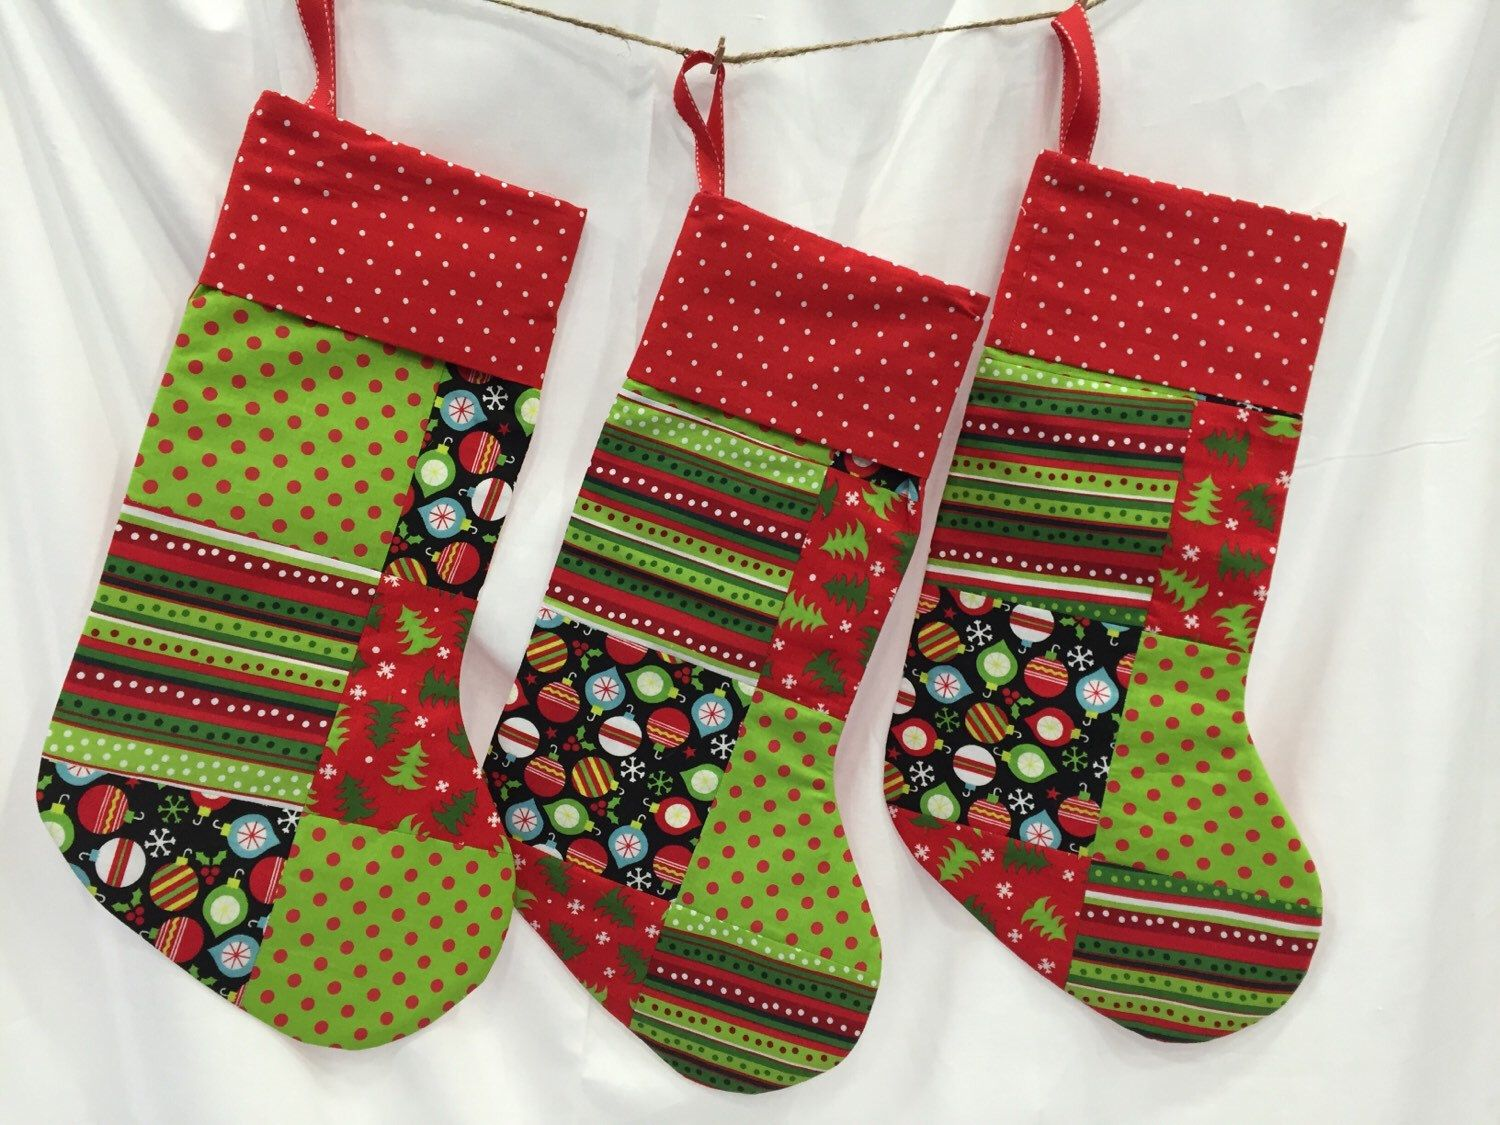 Patchwork Christmas Stockings by BarleyHill on Etsy https://www.etsy.com/listing/253258205/patchwork-christmas-stockings